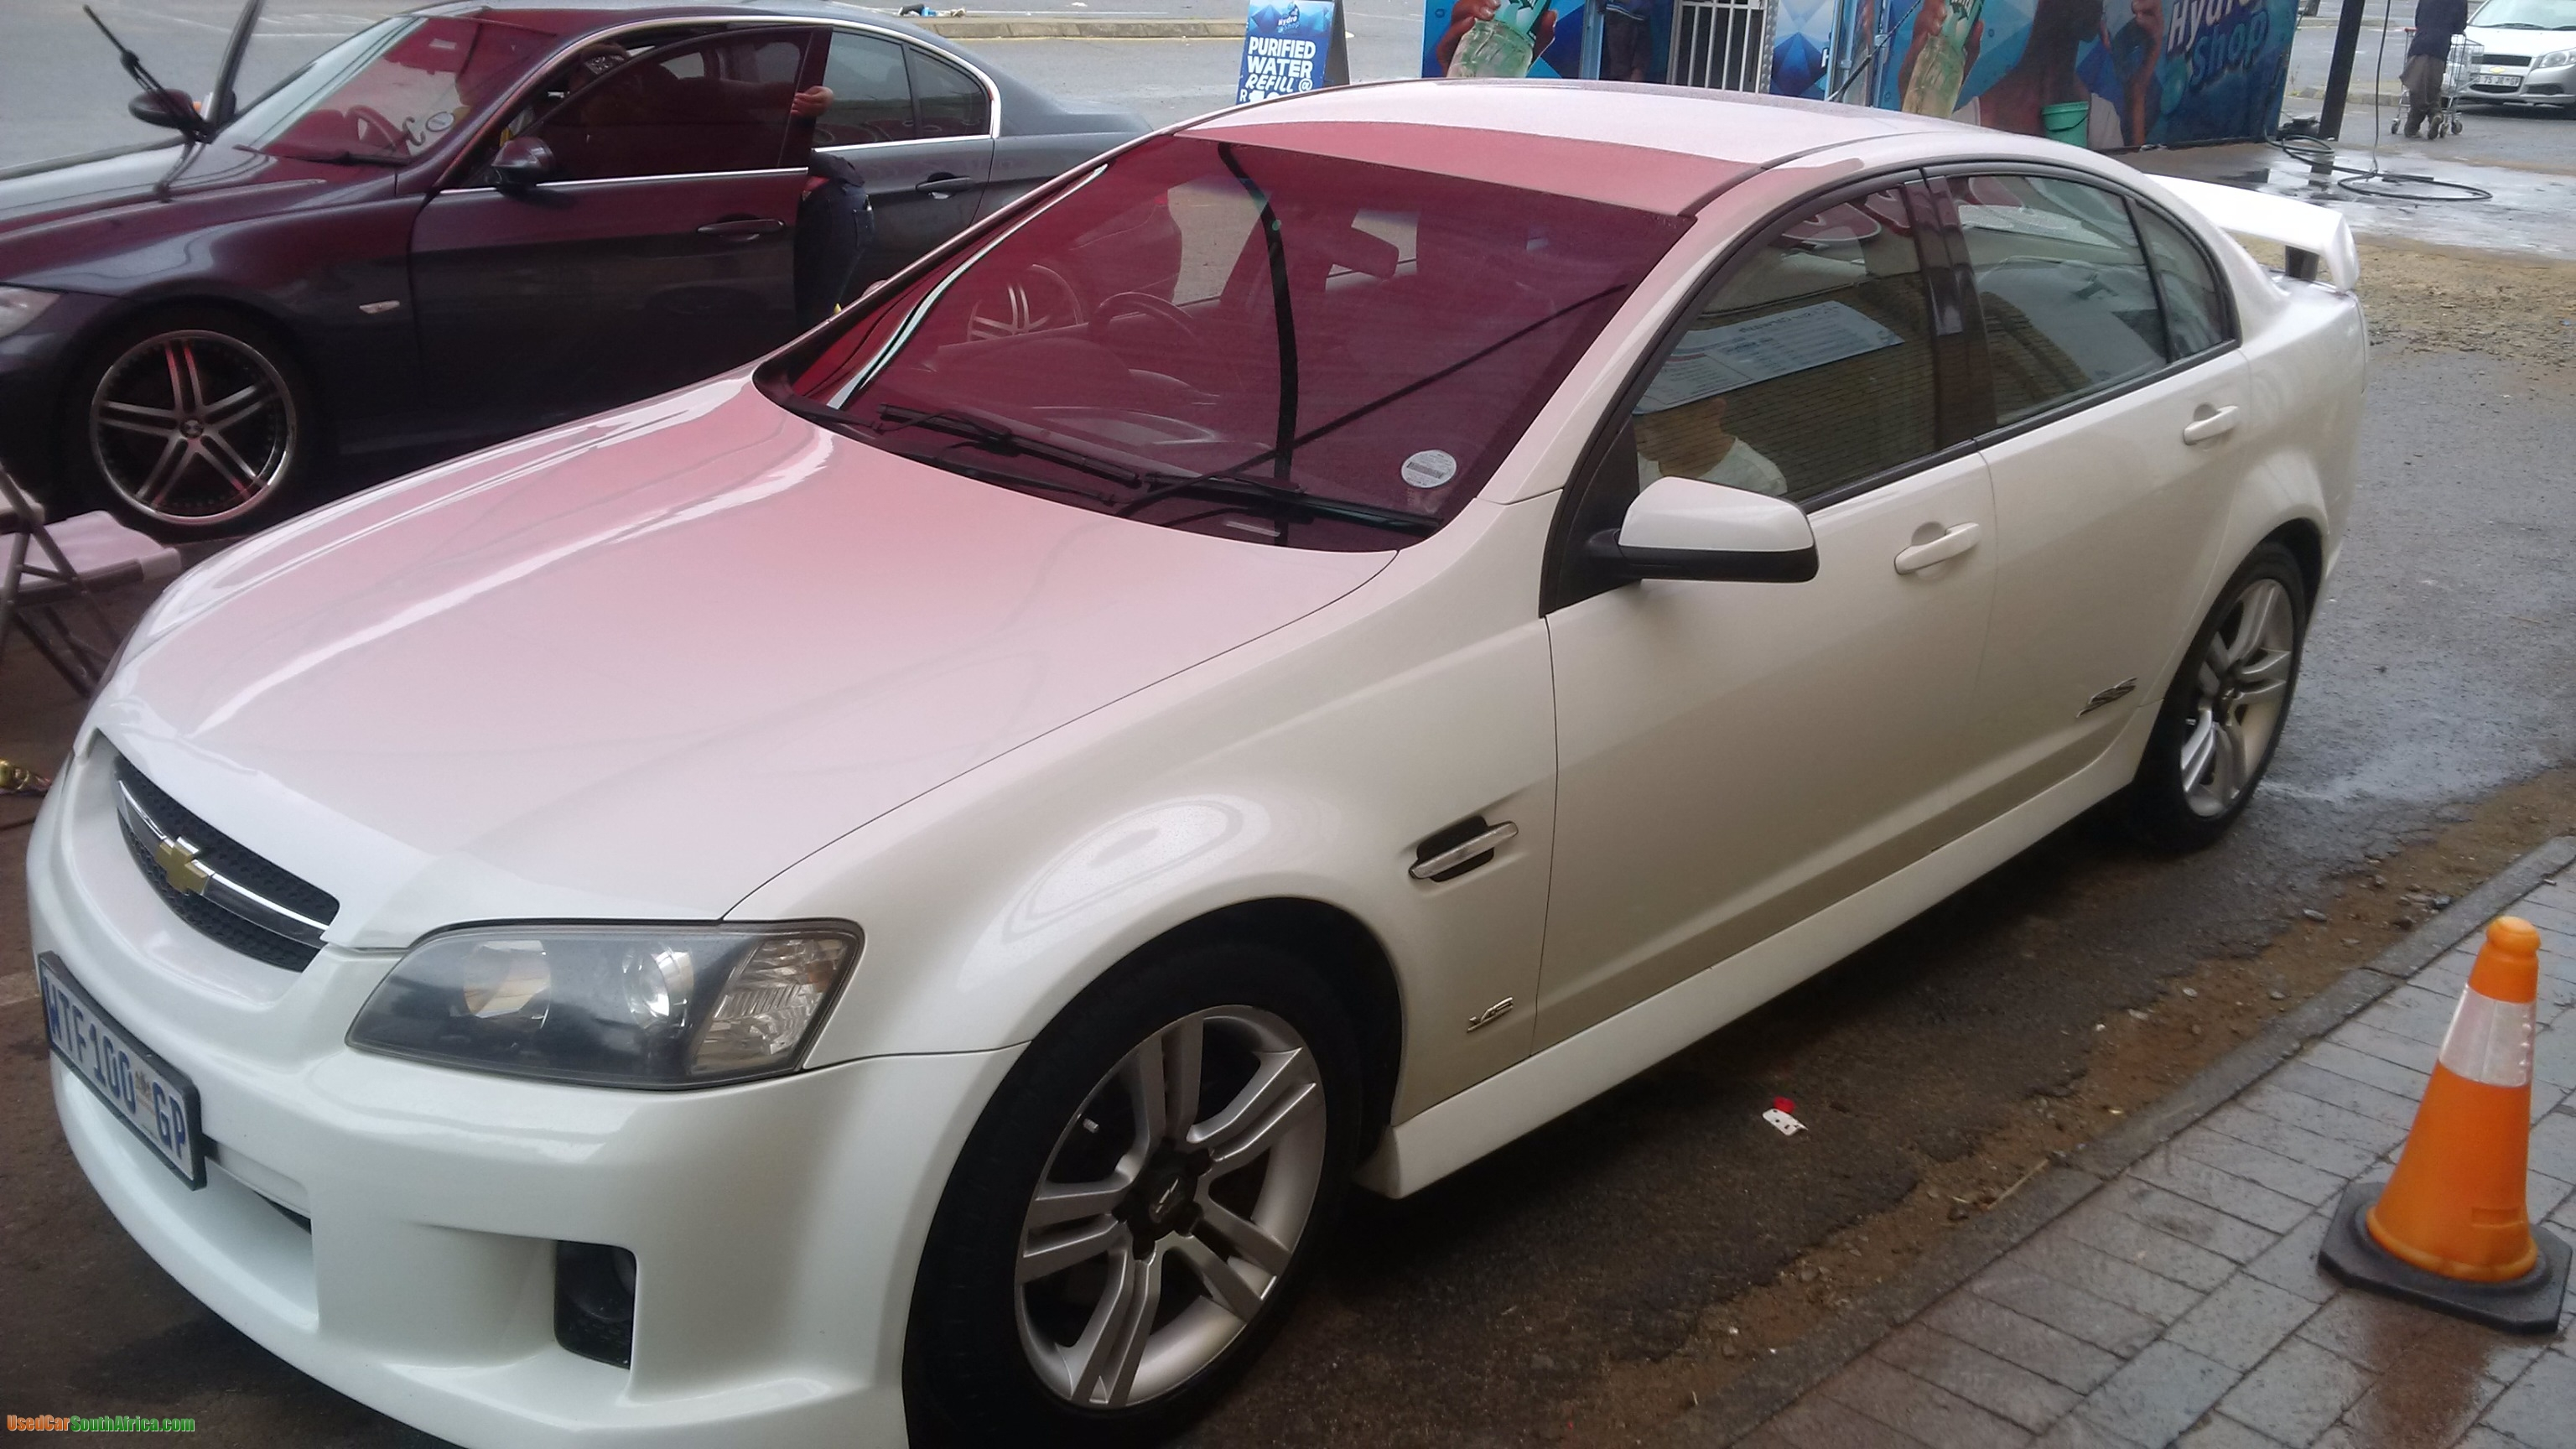 2008 chevrolet lumina ss used car for sale in westonaria gauteng south africa usedcarsouthafrica 0